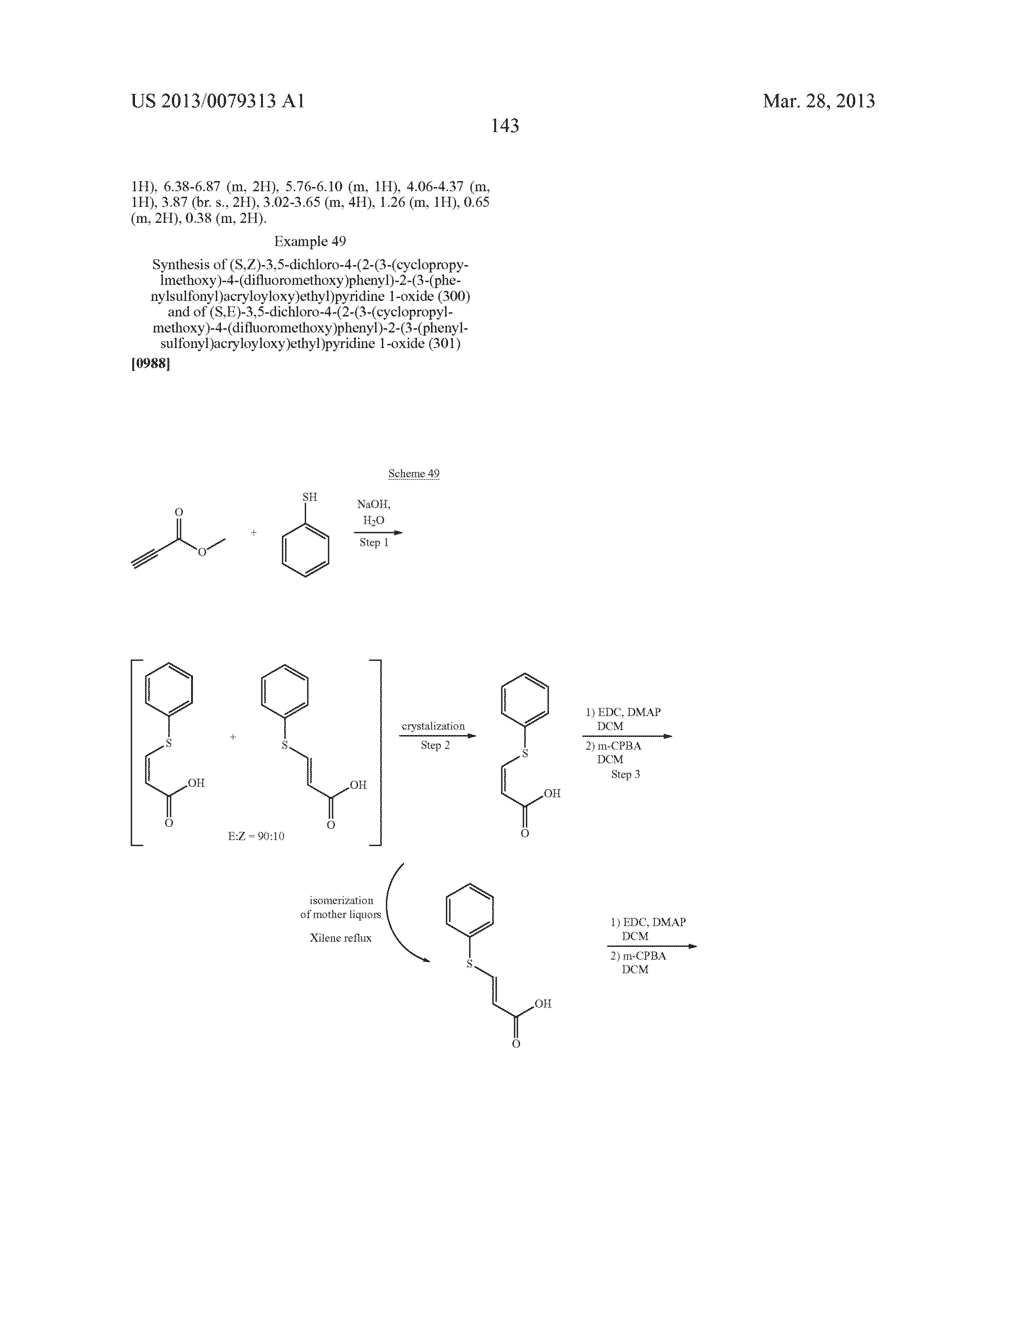 DERIVATIVES OF 1-PHENYL-2-PYRIDINYL ALKYL ALCOHOLS AS PHOSPHODIESTERASE     INHIBITORS - diagram, schematic, and image 144